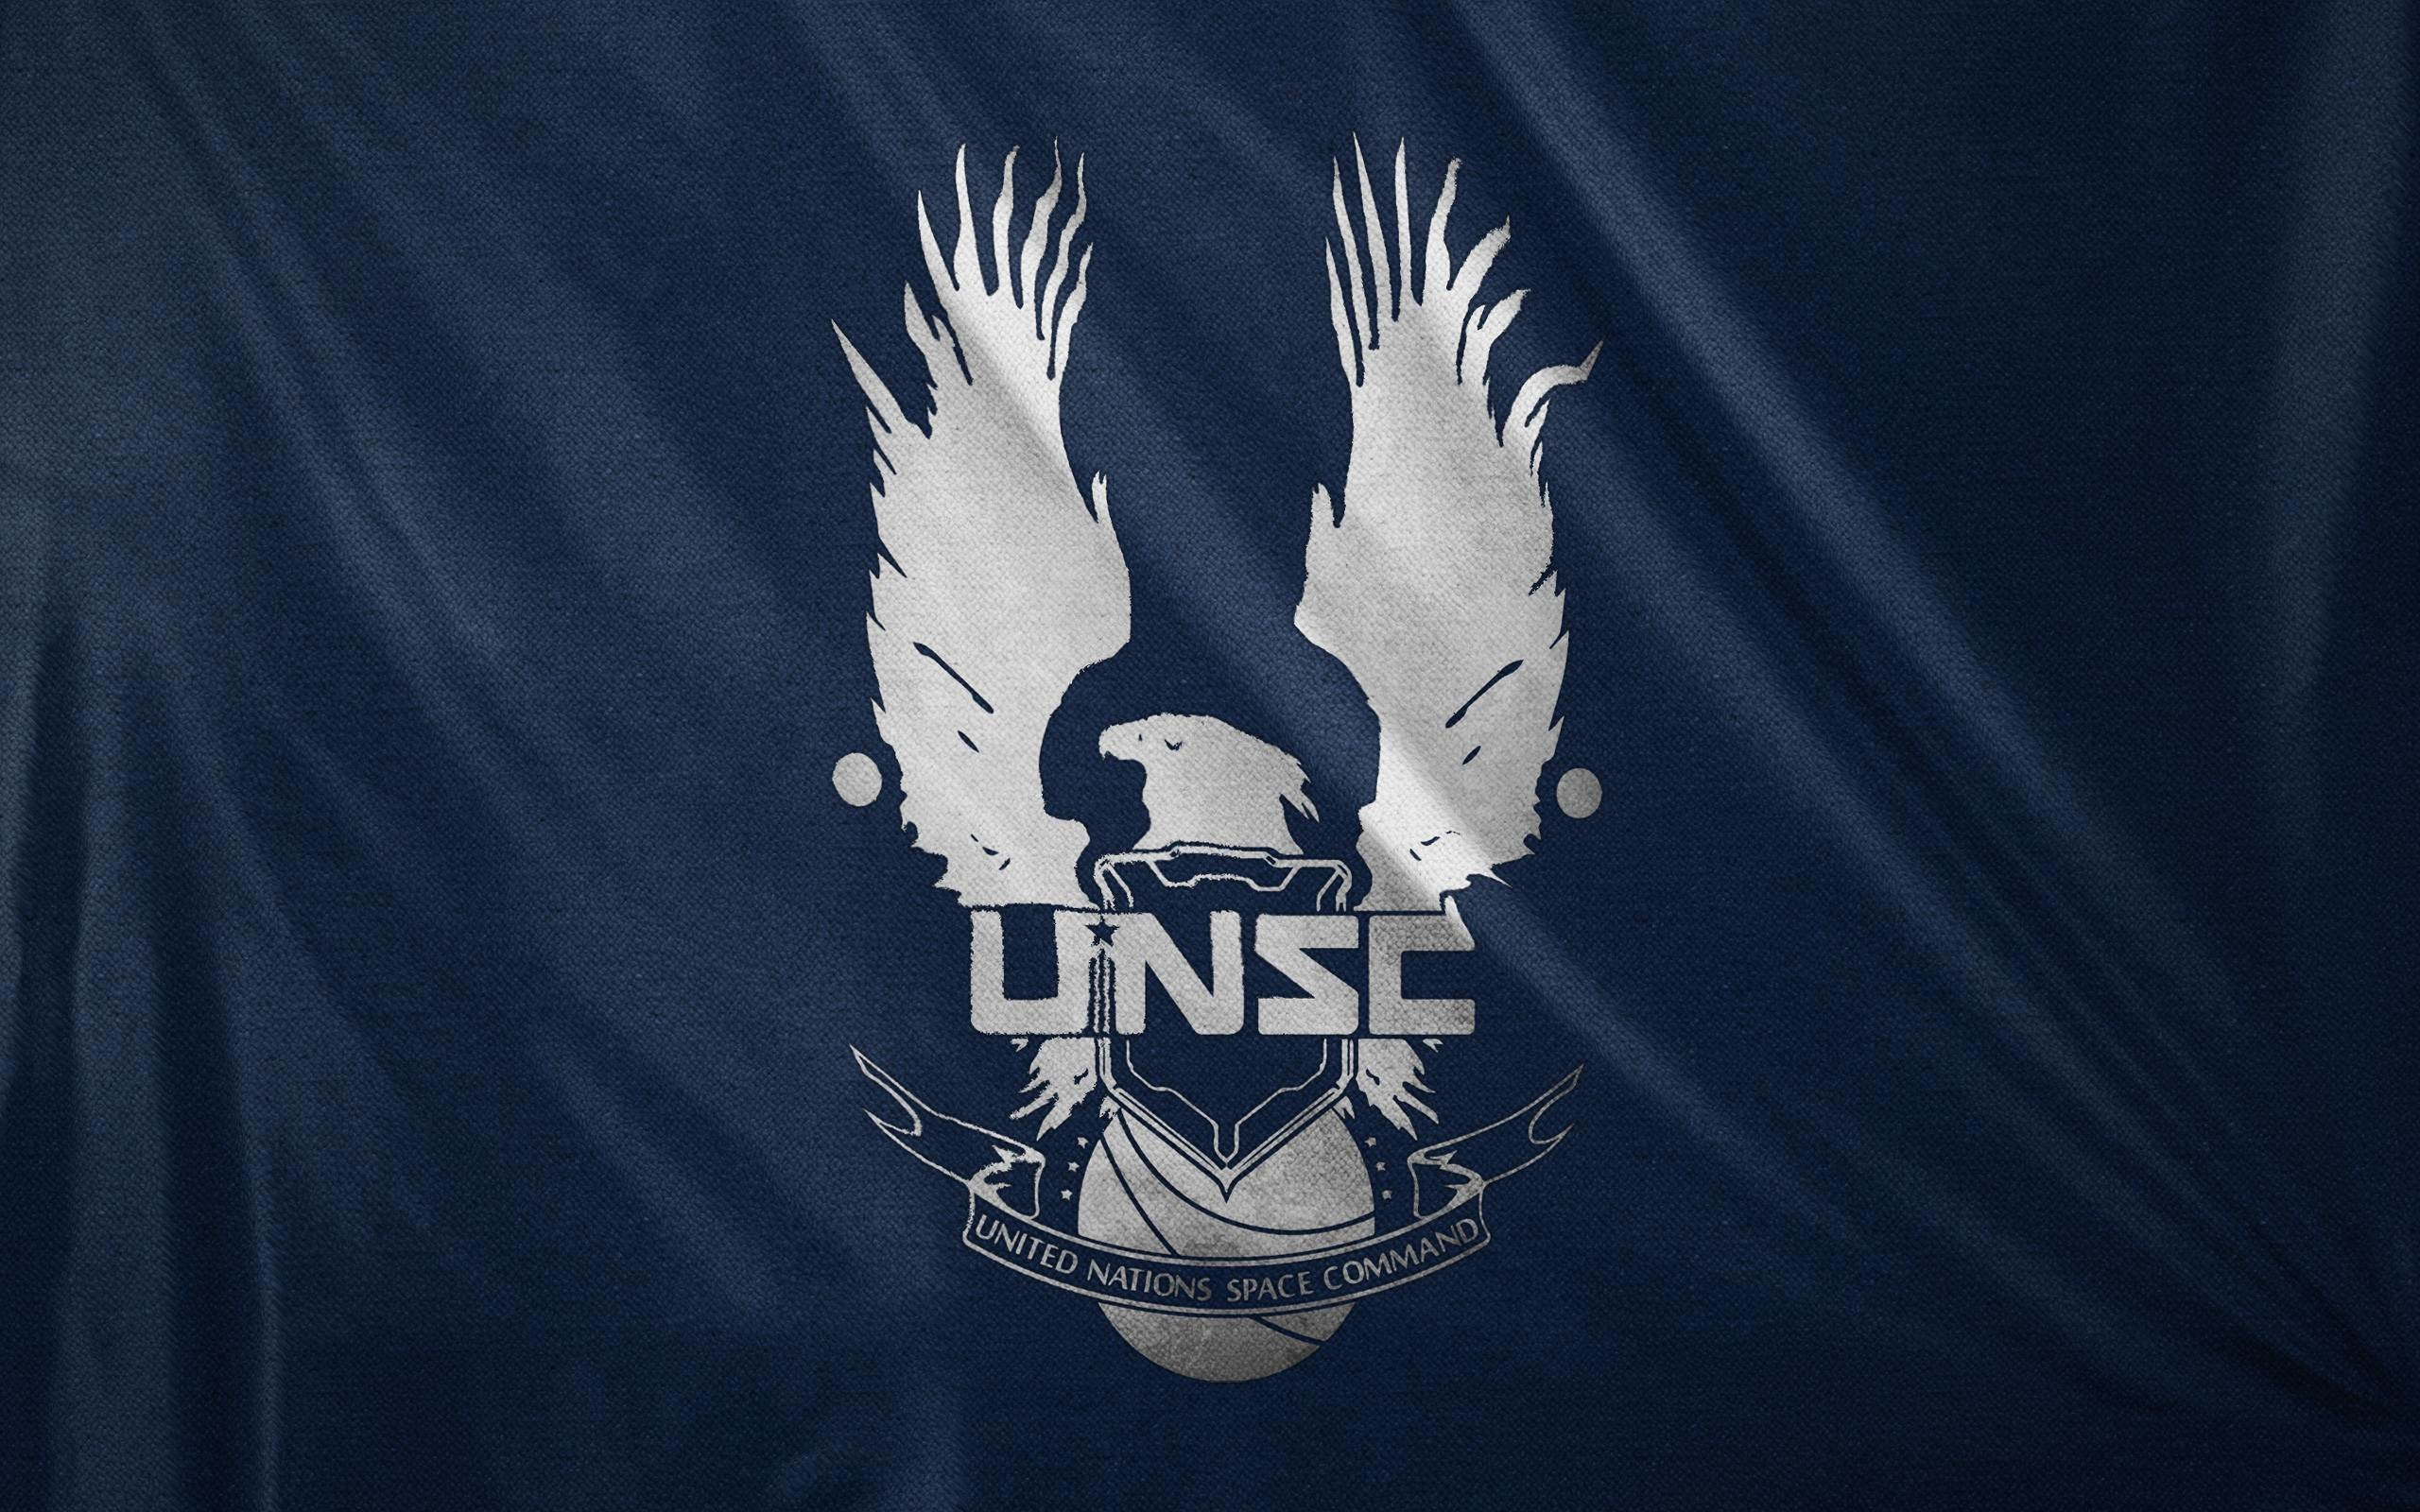 2560x1600 Unsc Wallpapers - Full HD wallpaper search